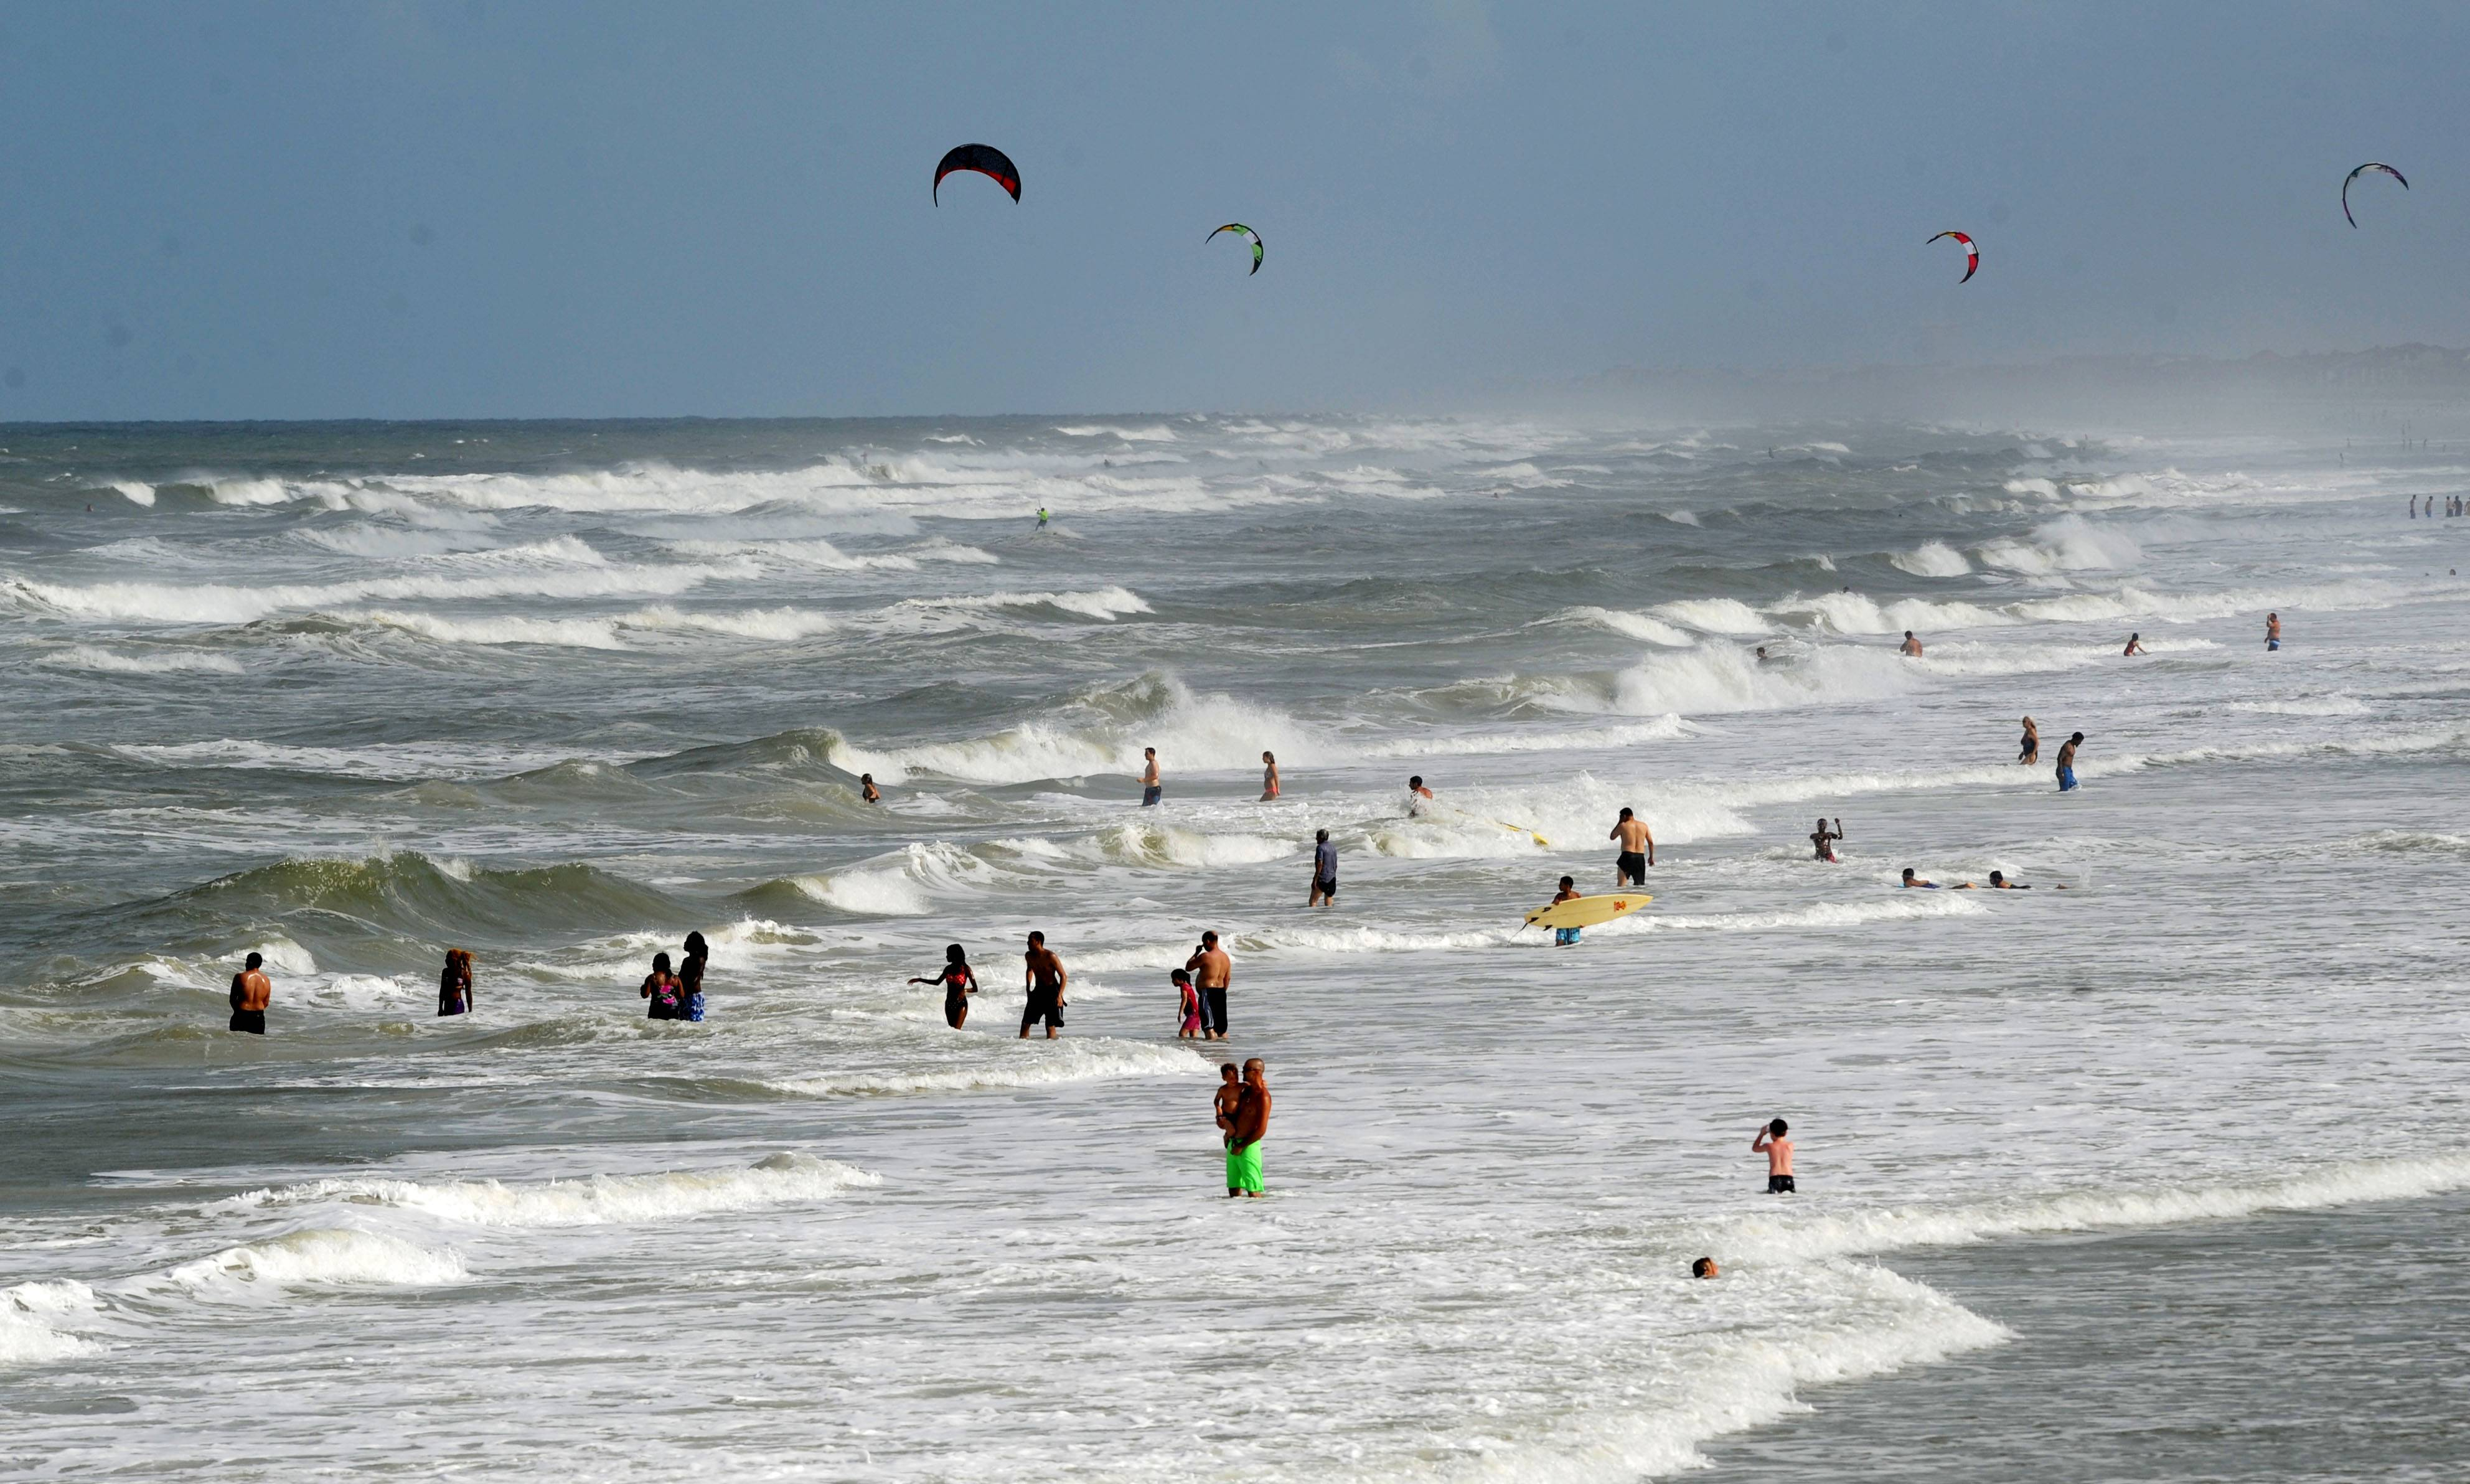 People enjoy the beach and heavy surf Wednesday at Jacksonville Beach, Fla. Tropical storm Arthur moved off the coast of Florida and headed to the Carolinas.